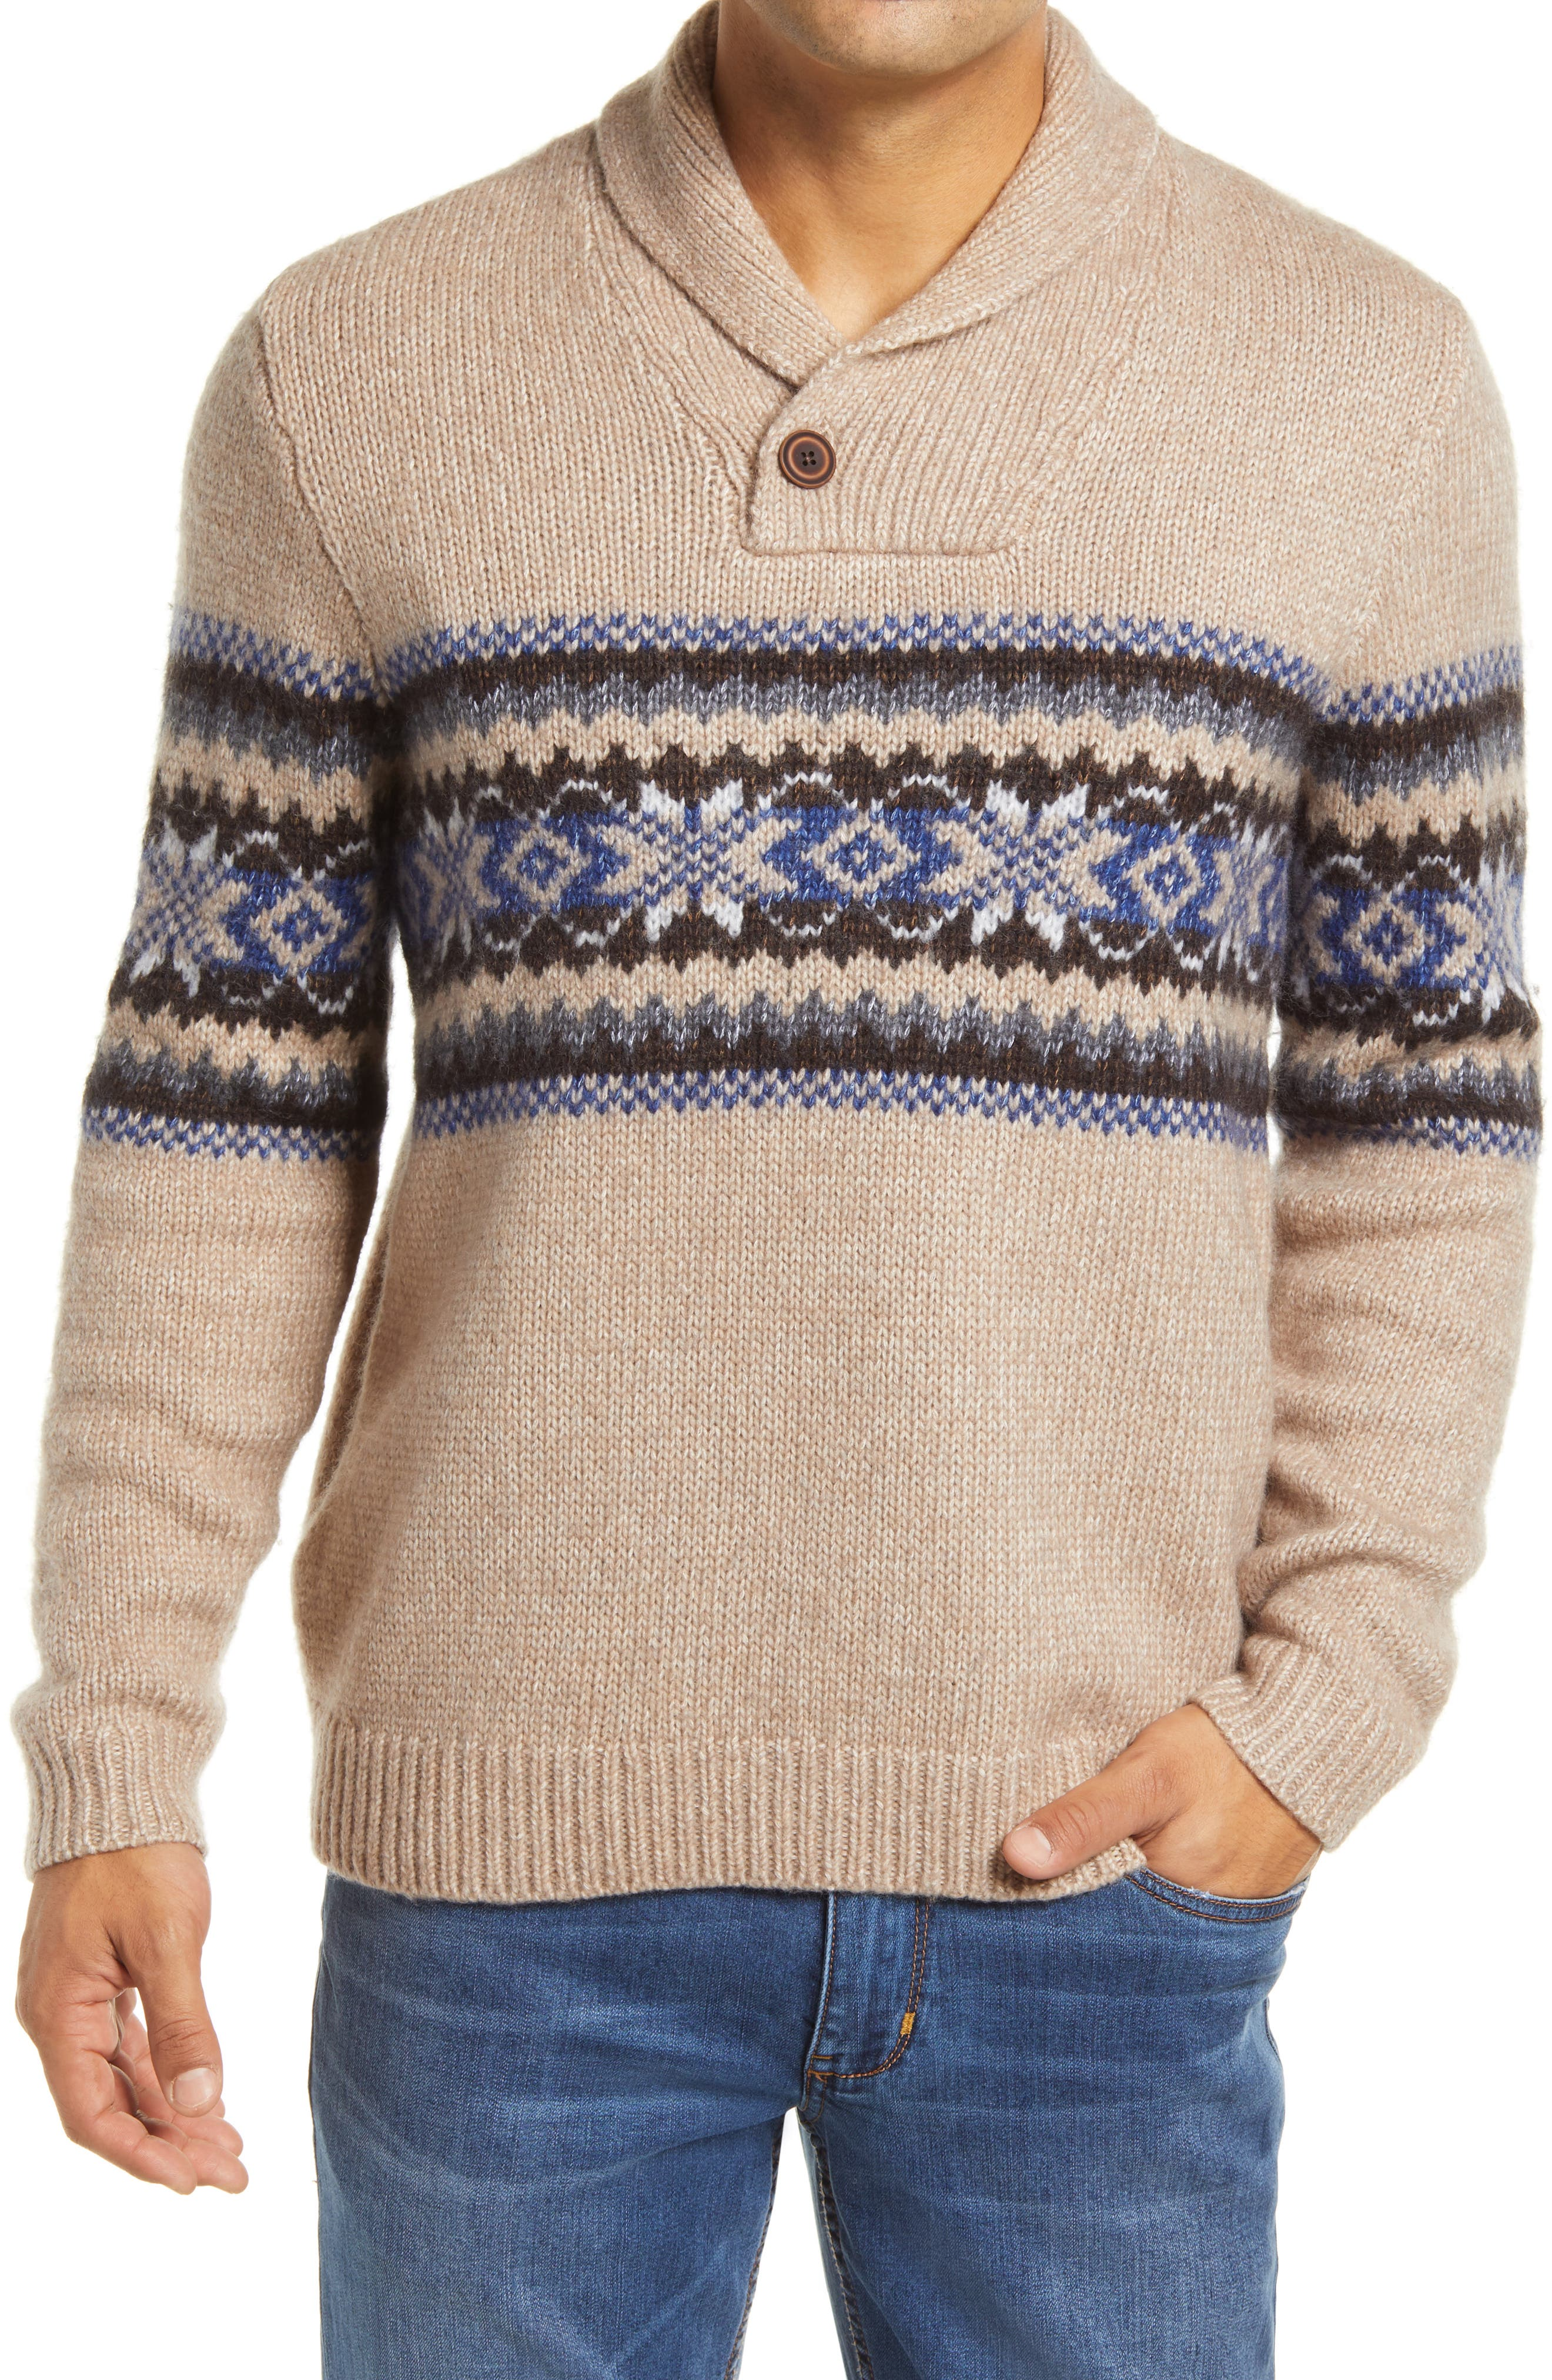 60s 70s Men's Jackets & Sweaters Mens Tommy Bahama Shawl Collar Sweater $228.00 AT vintagedancer.com